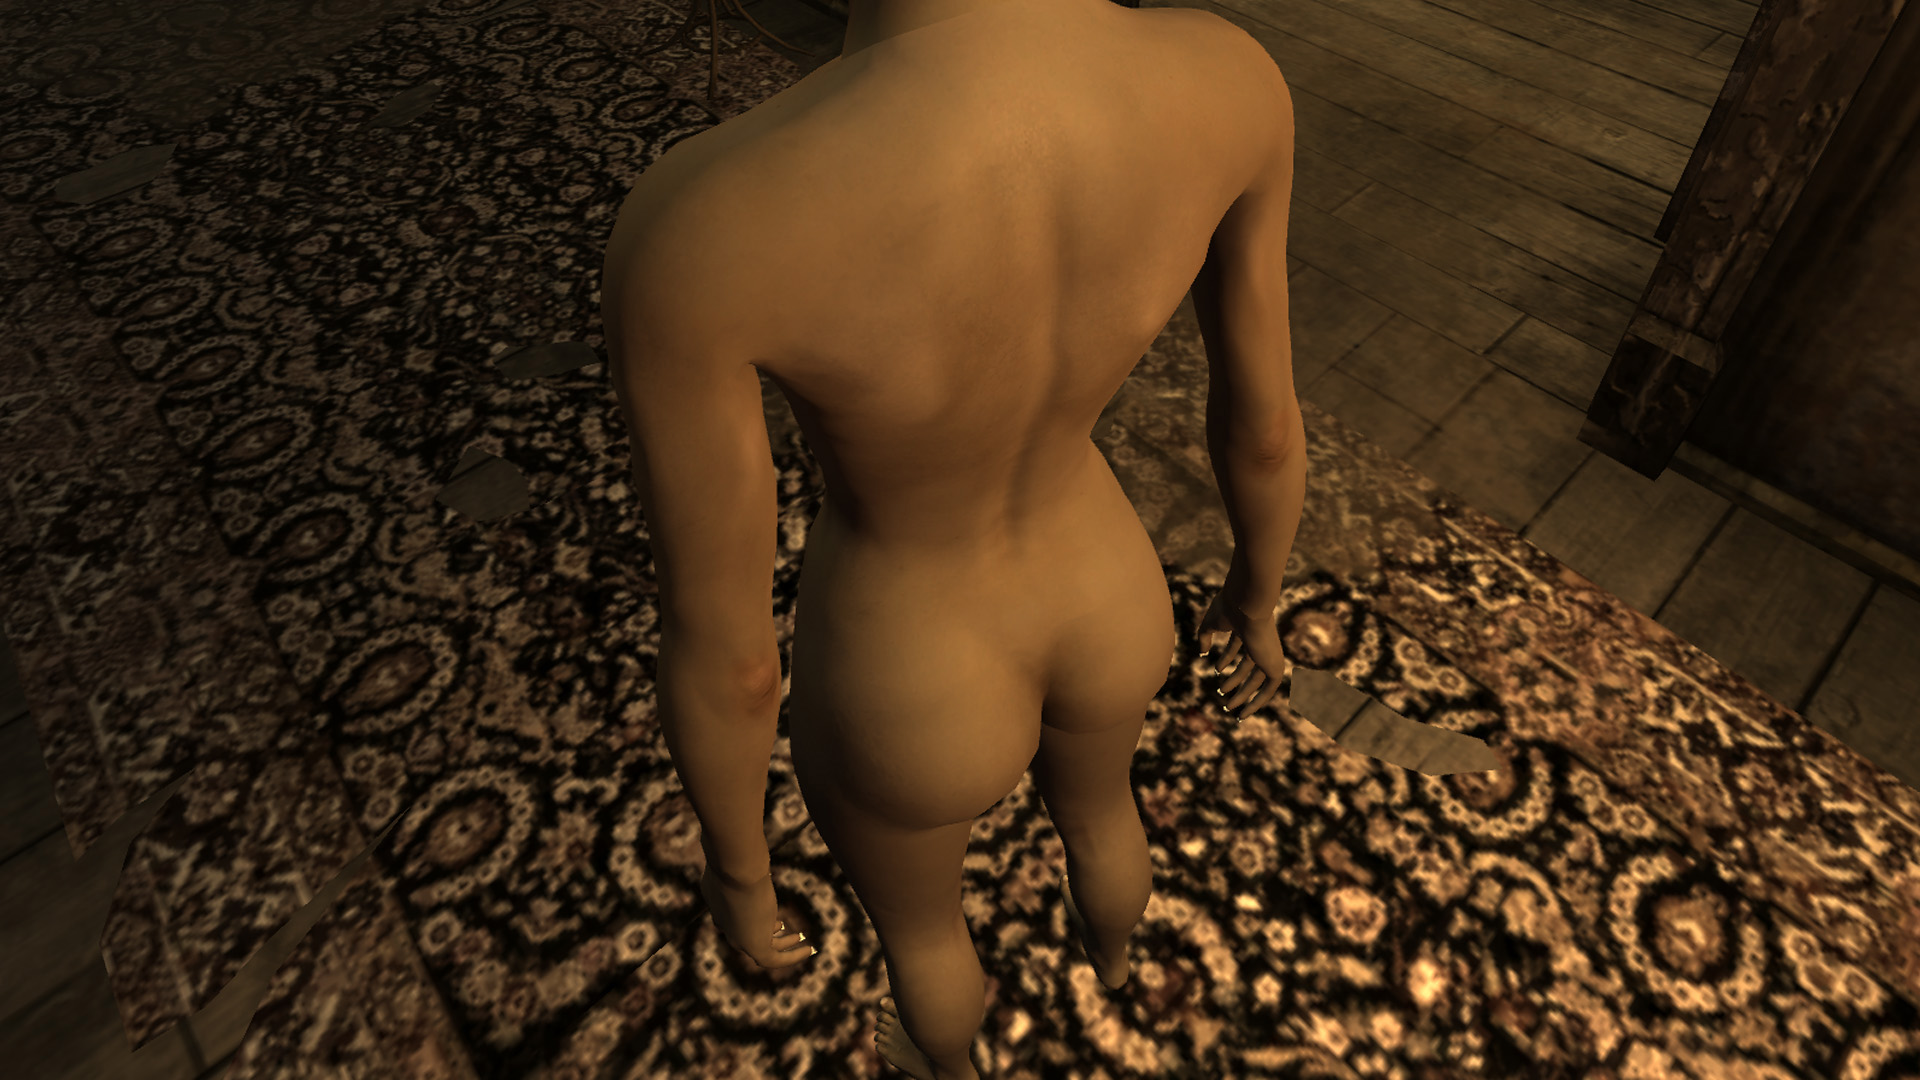 Fallout new vegas nude patch adult thumbs